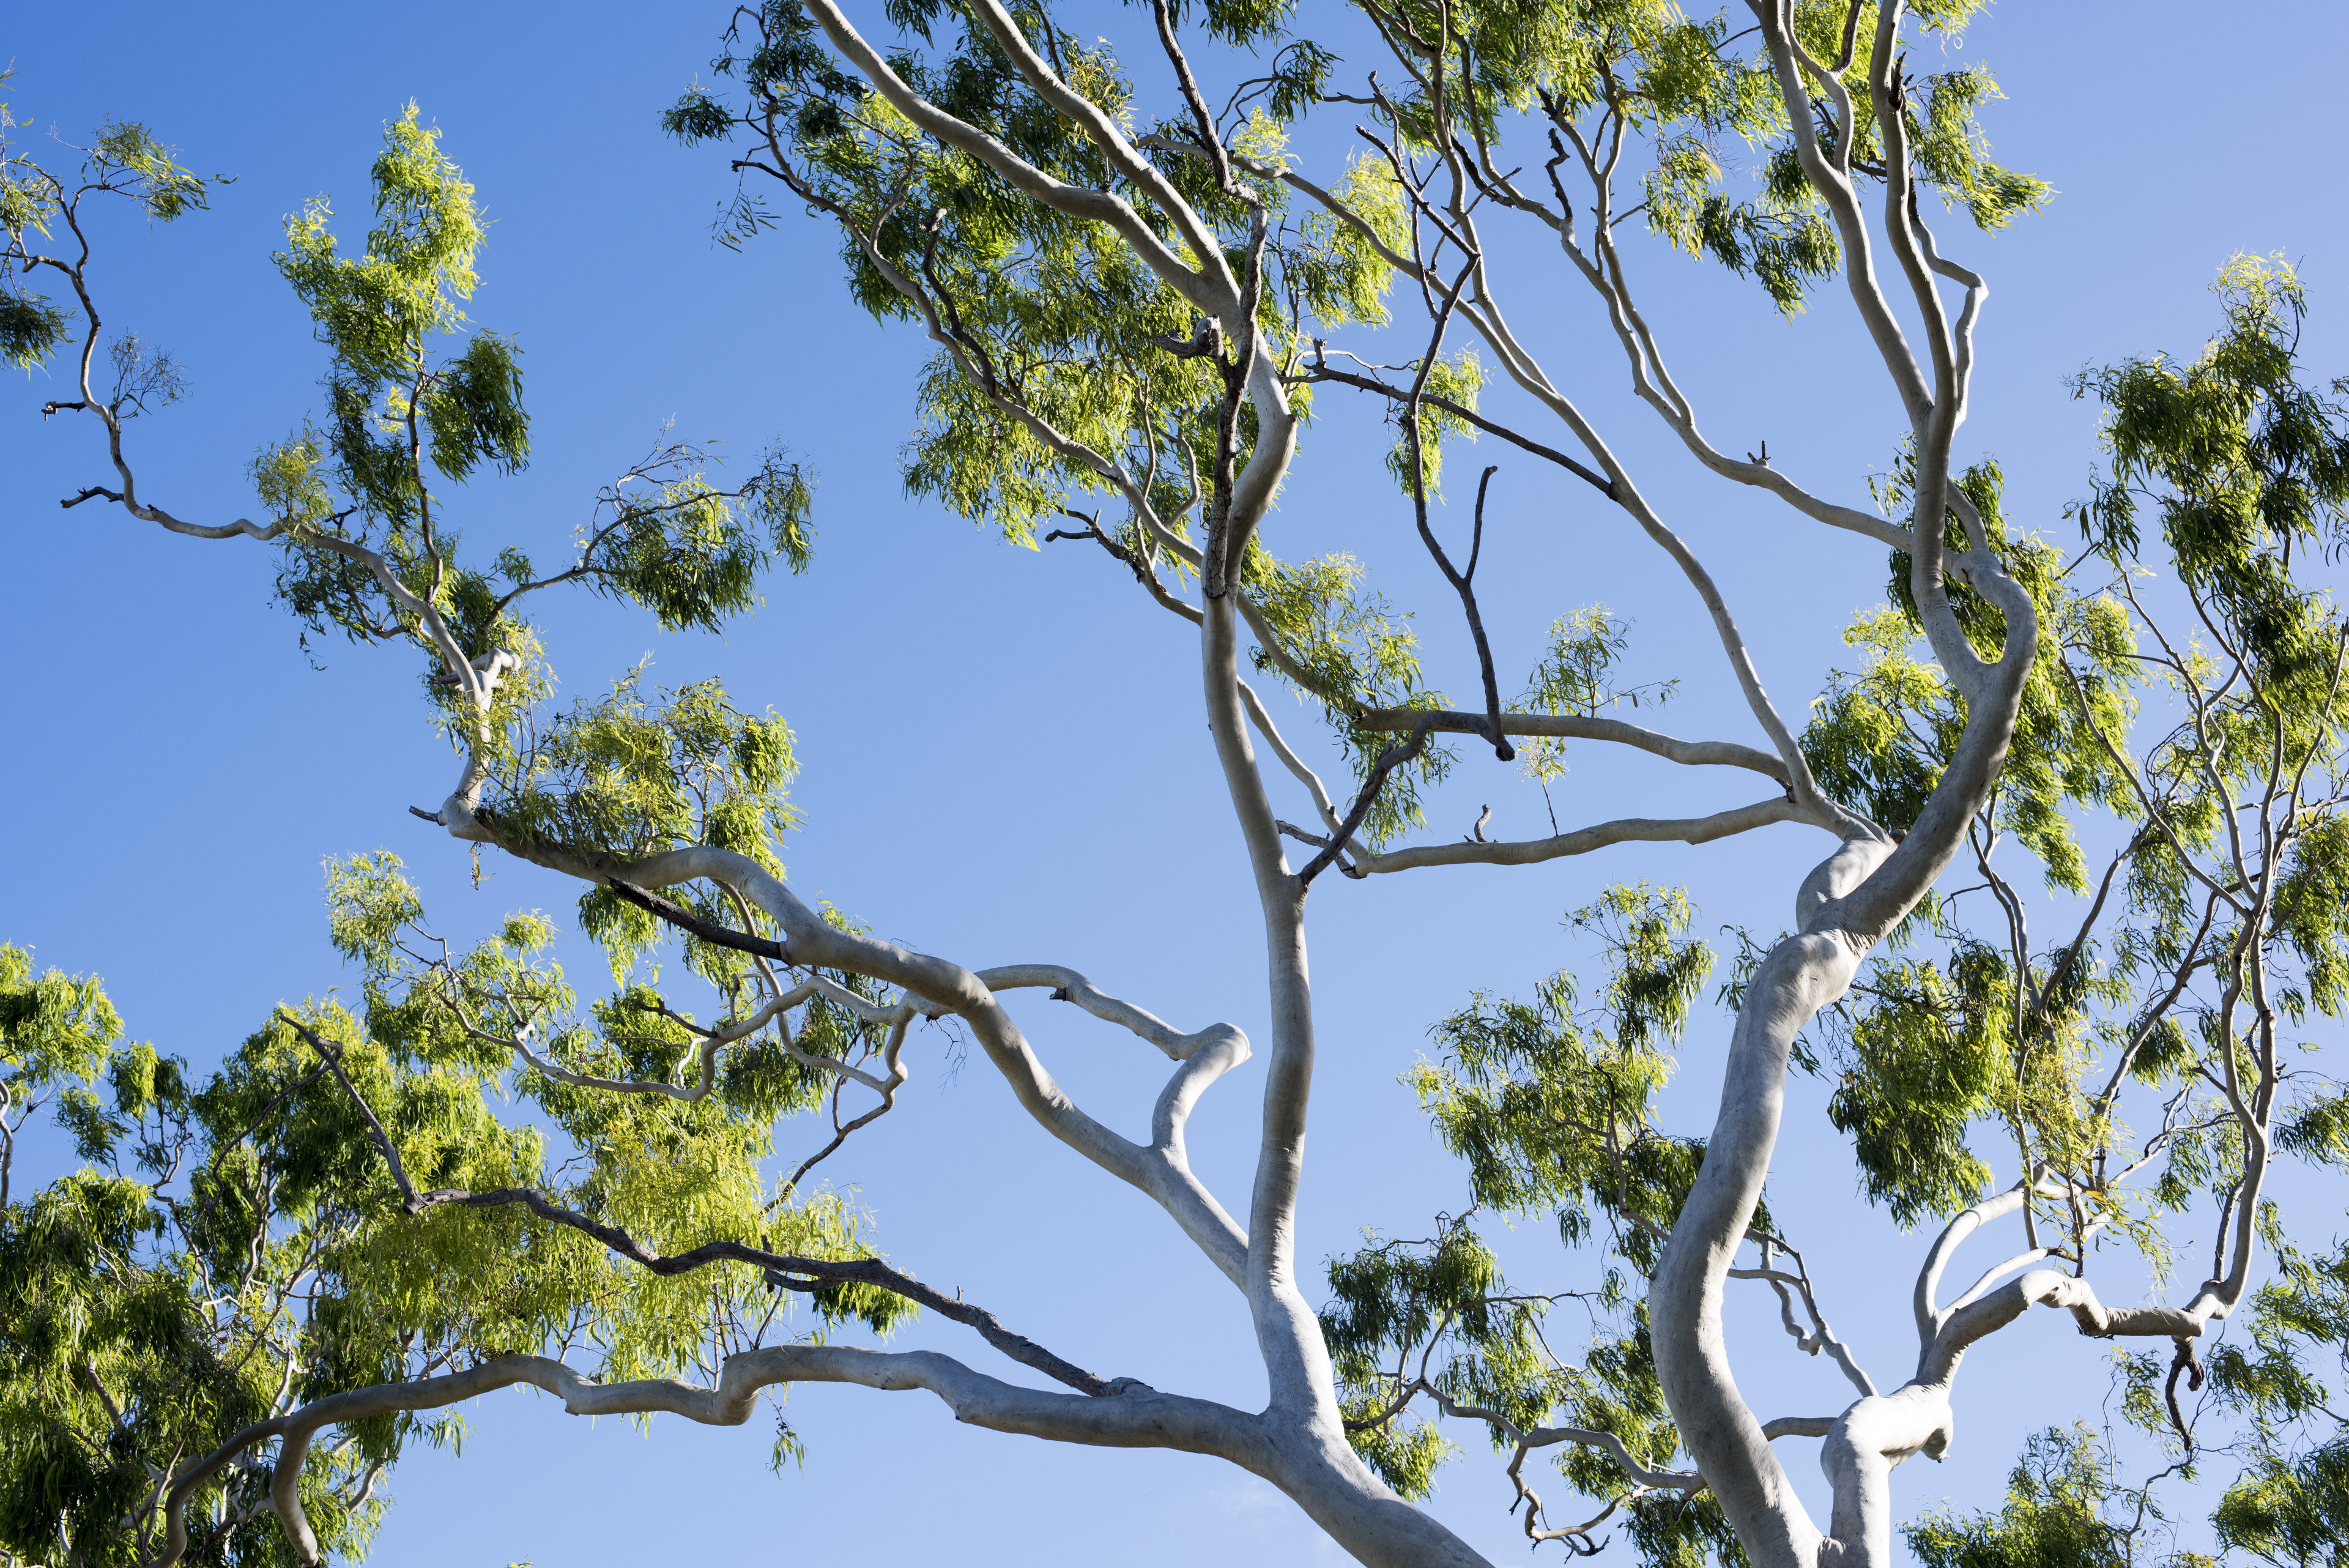 The vibrant green leaves and branches of a gum tree sway in the wind under a clear blue sky.